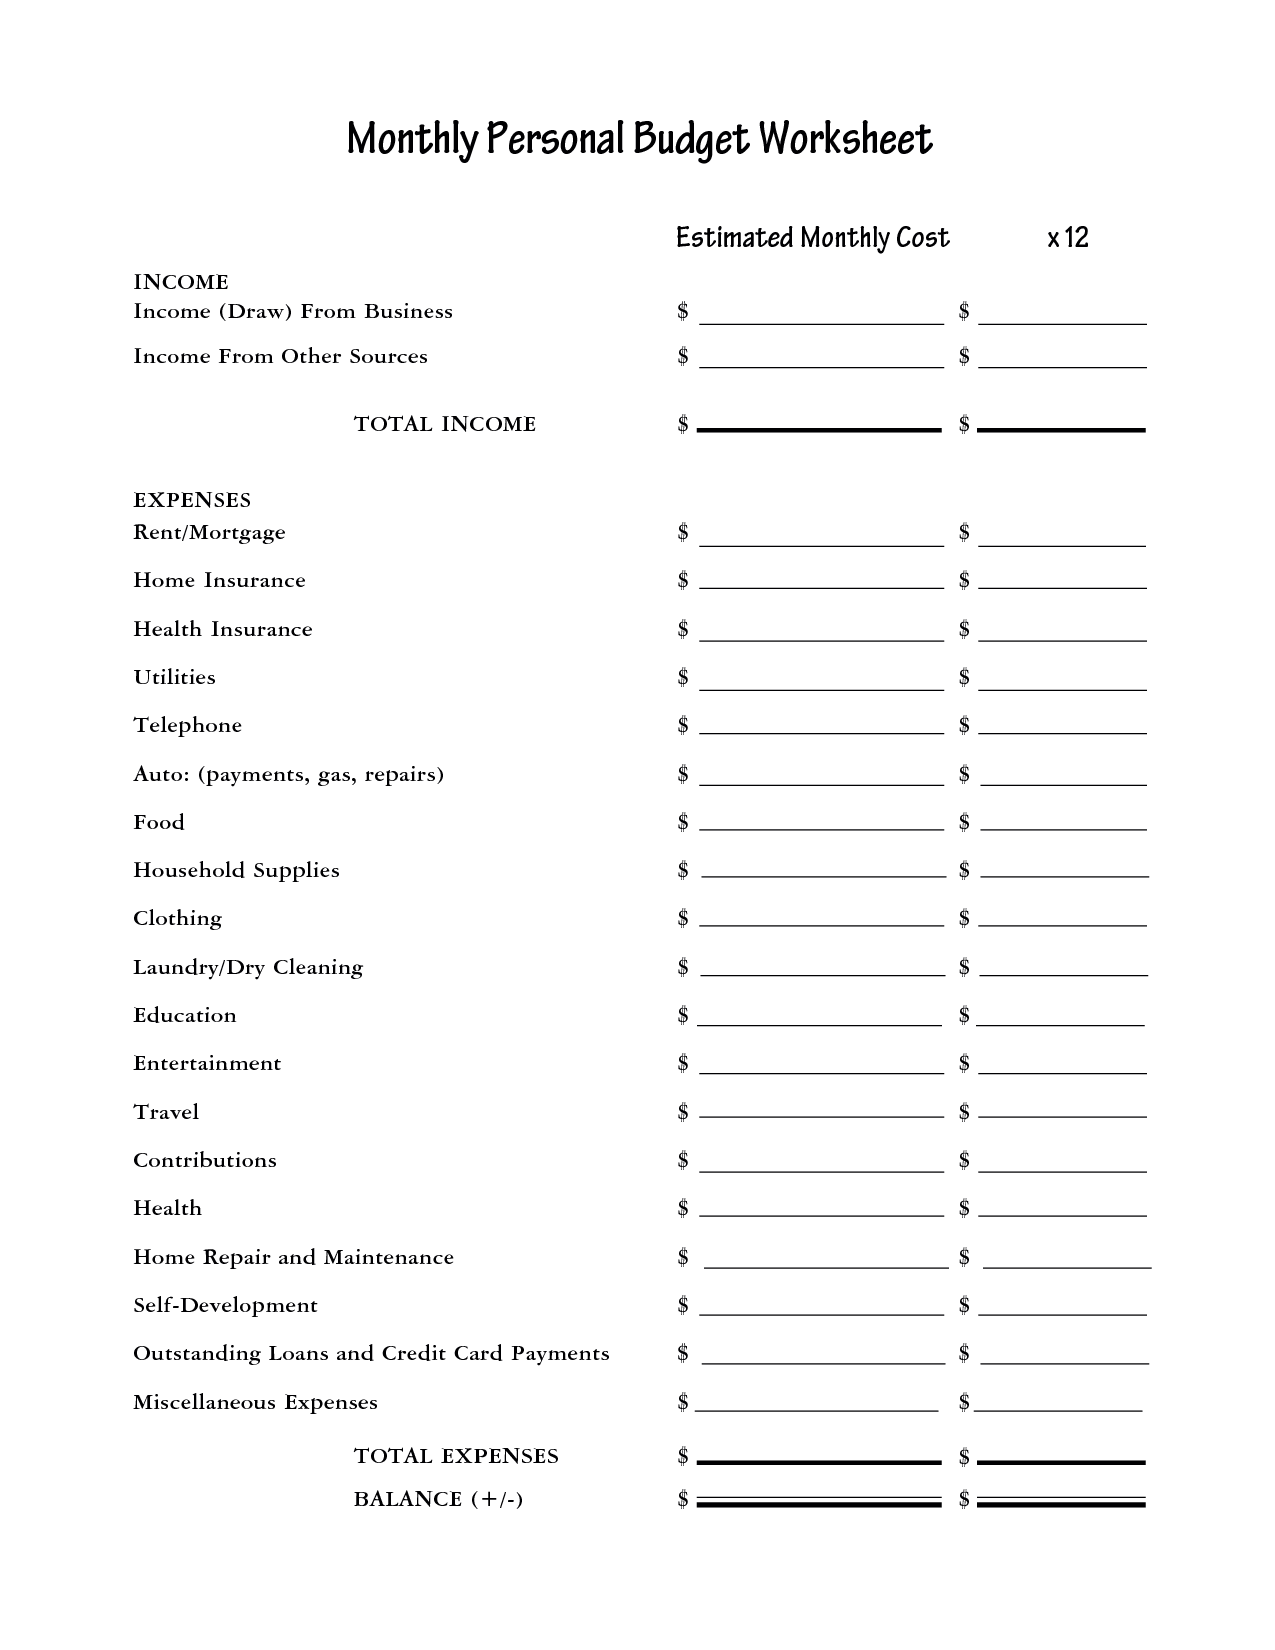 Printable blank monthly budget worksheet 7 plus monthly for Asset and liability statement template